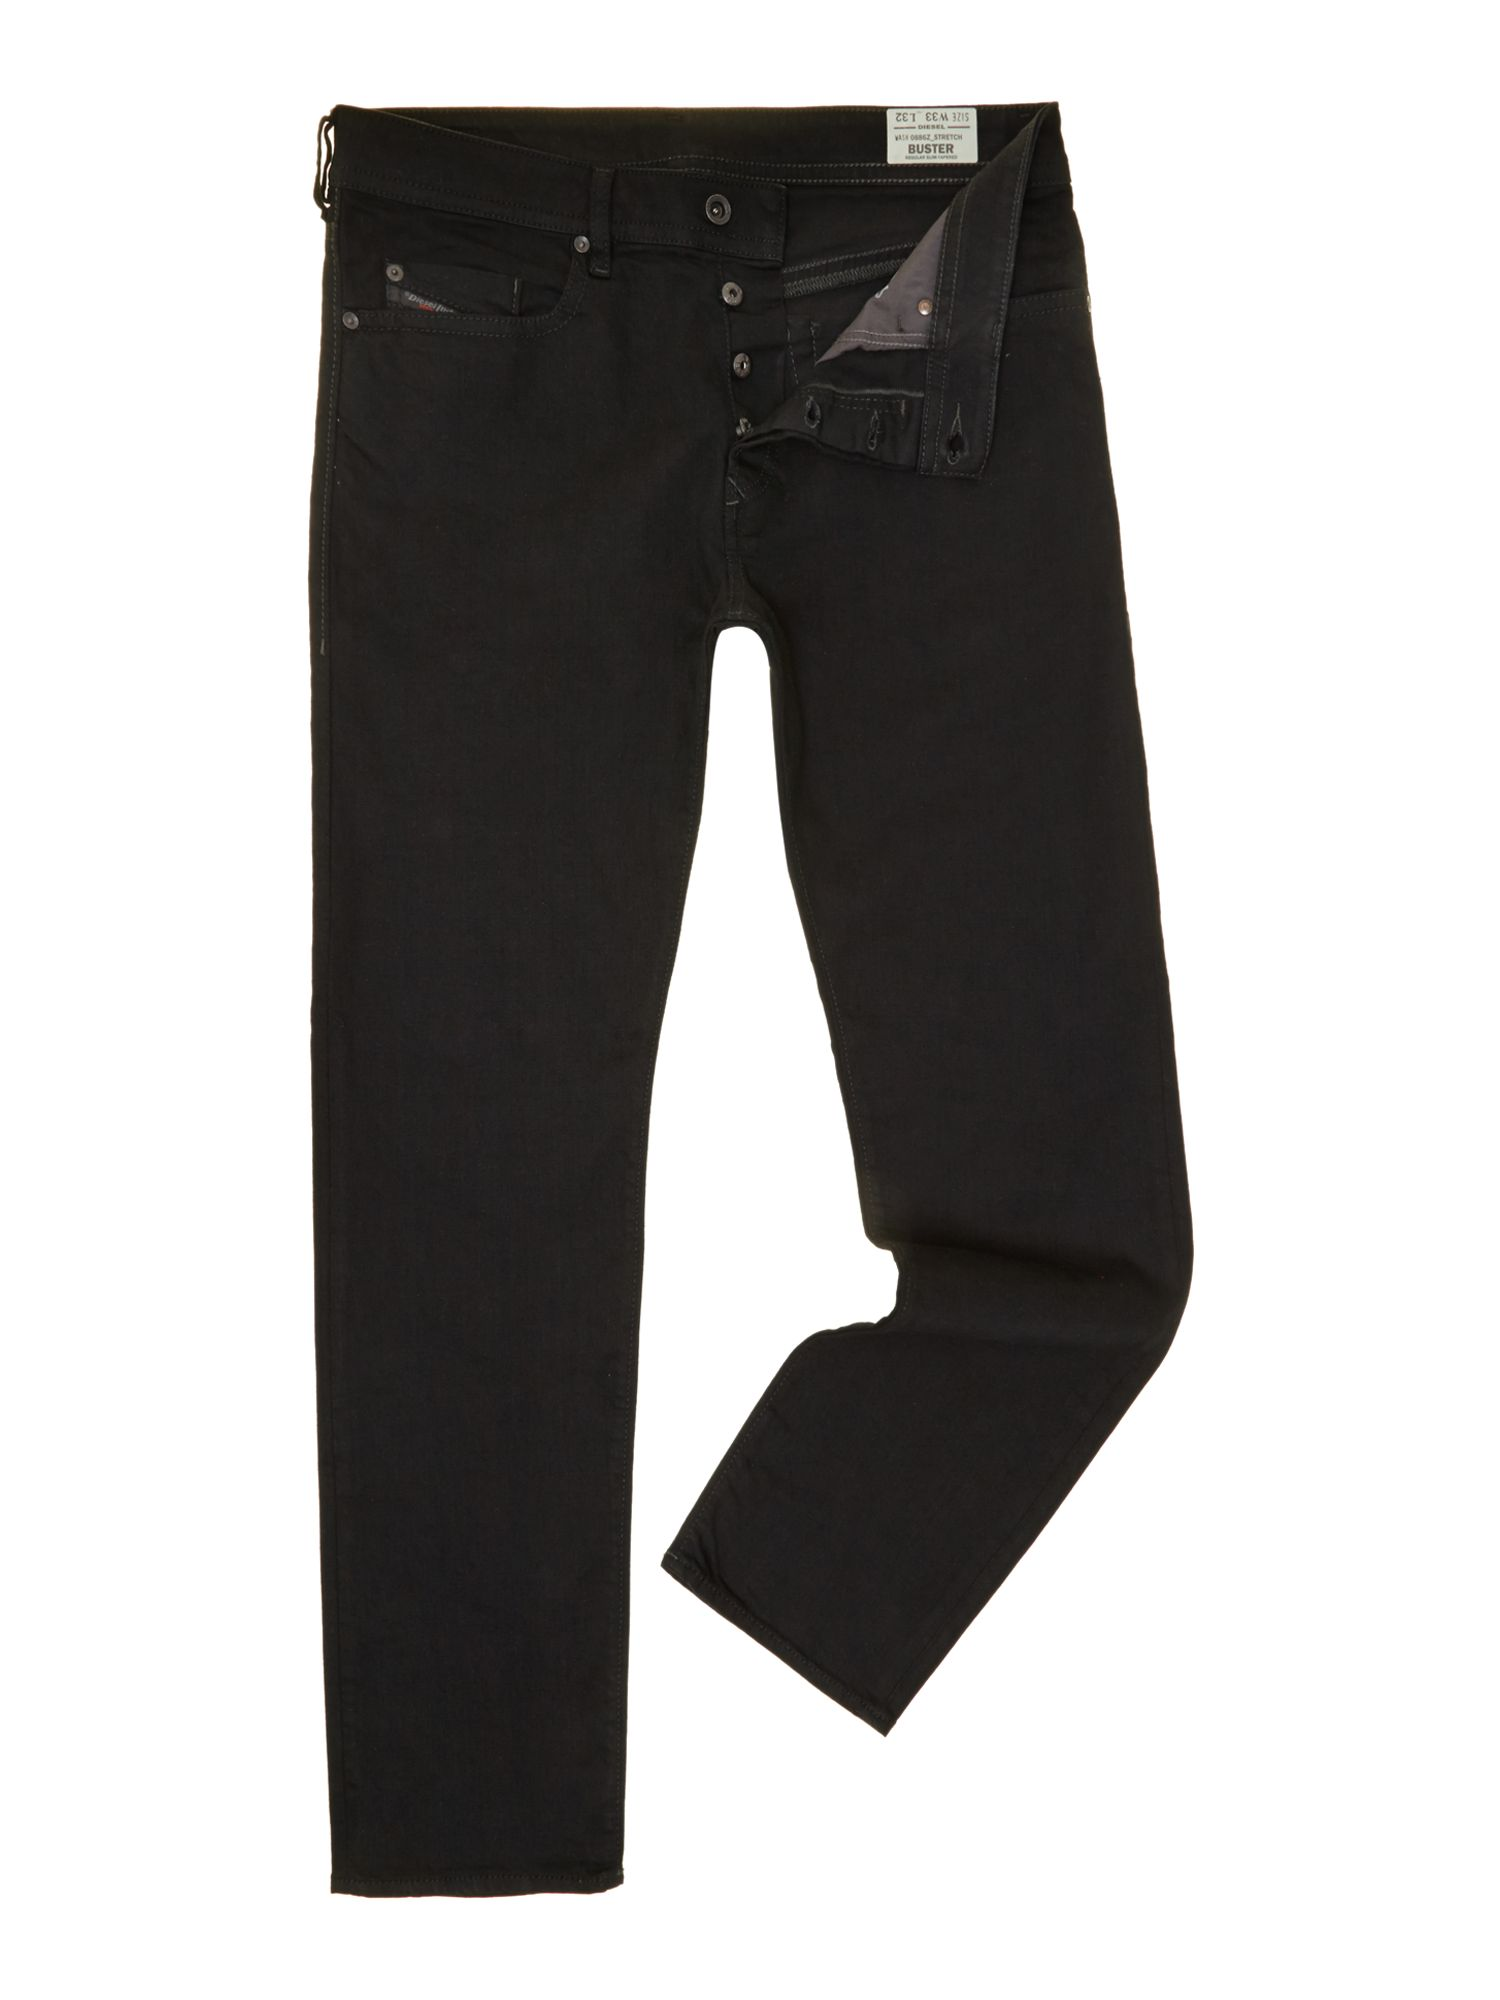 Mens Buster 886z Slim Tapered Fit Stretch Jeans, Black